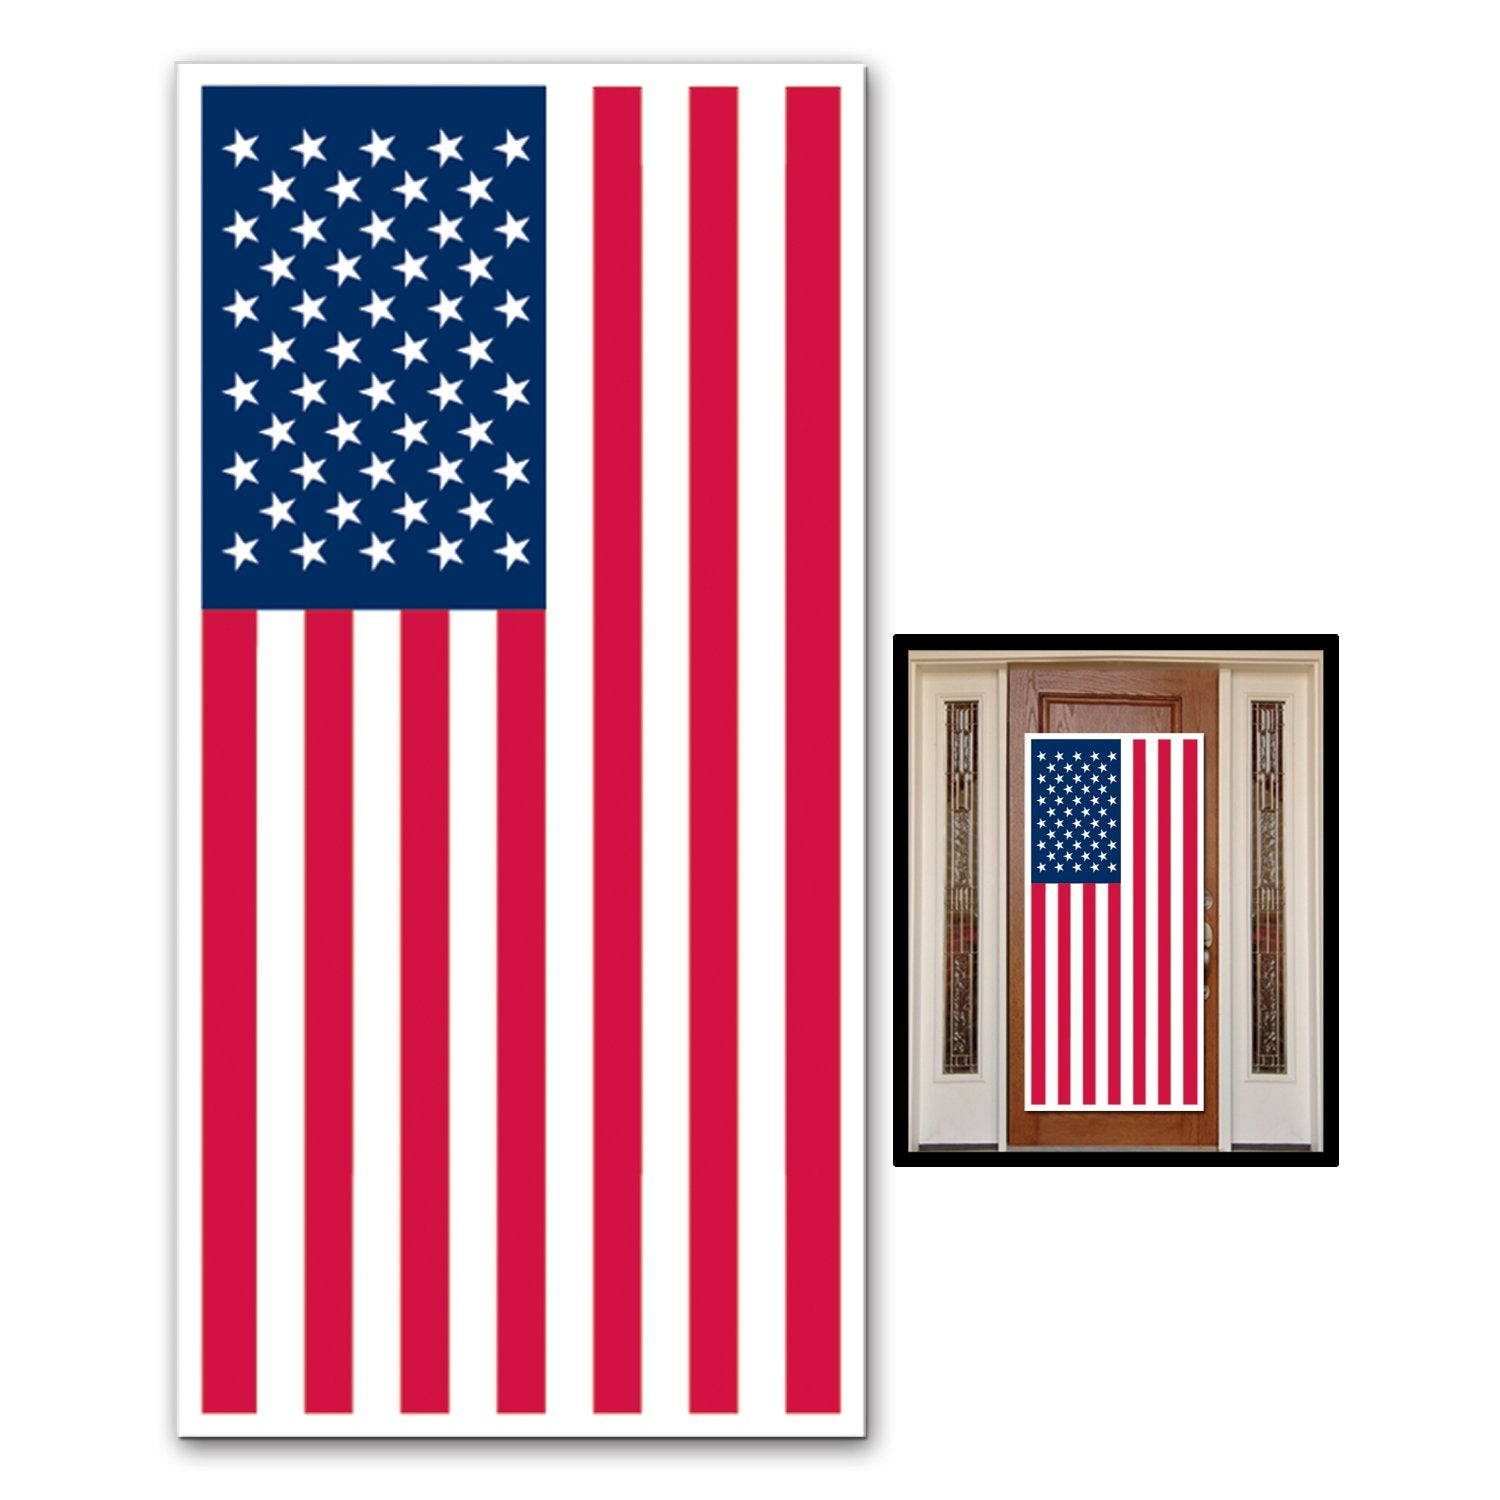 American Flag Door Cover 76cm x 152cm